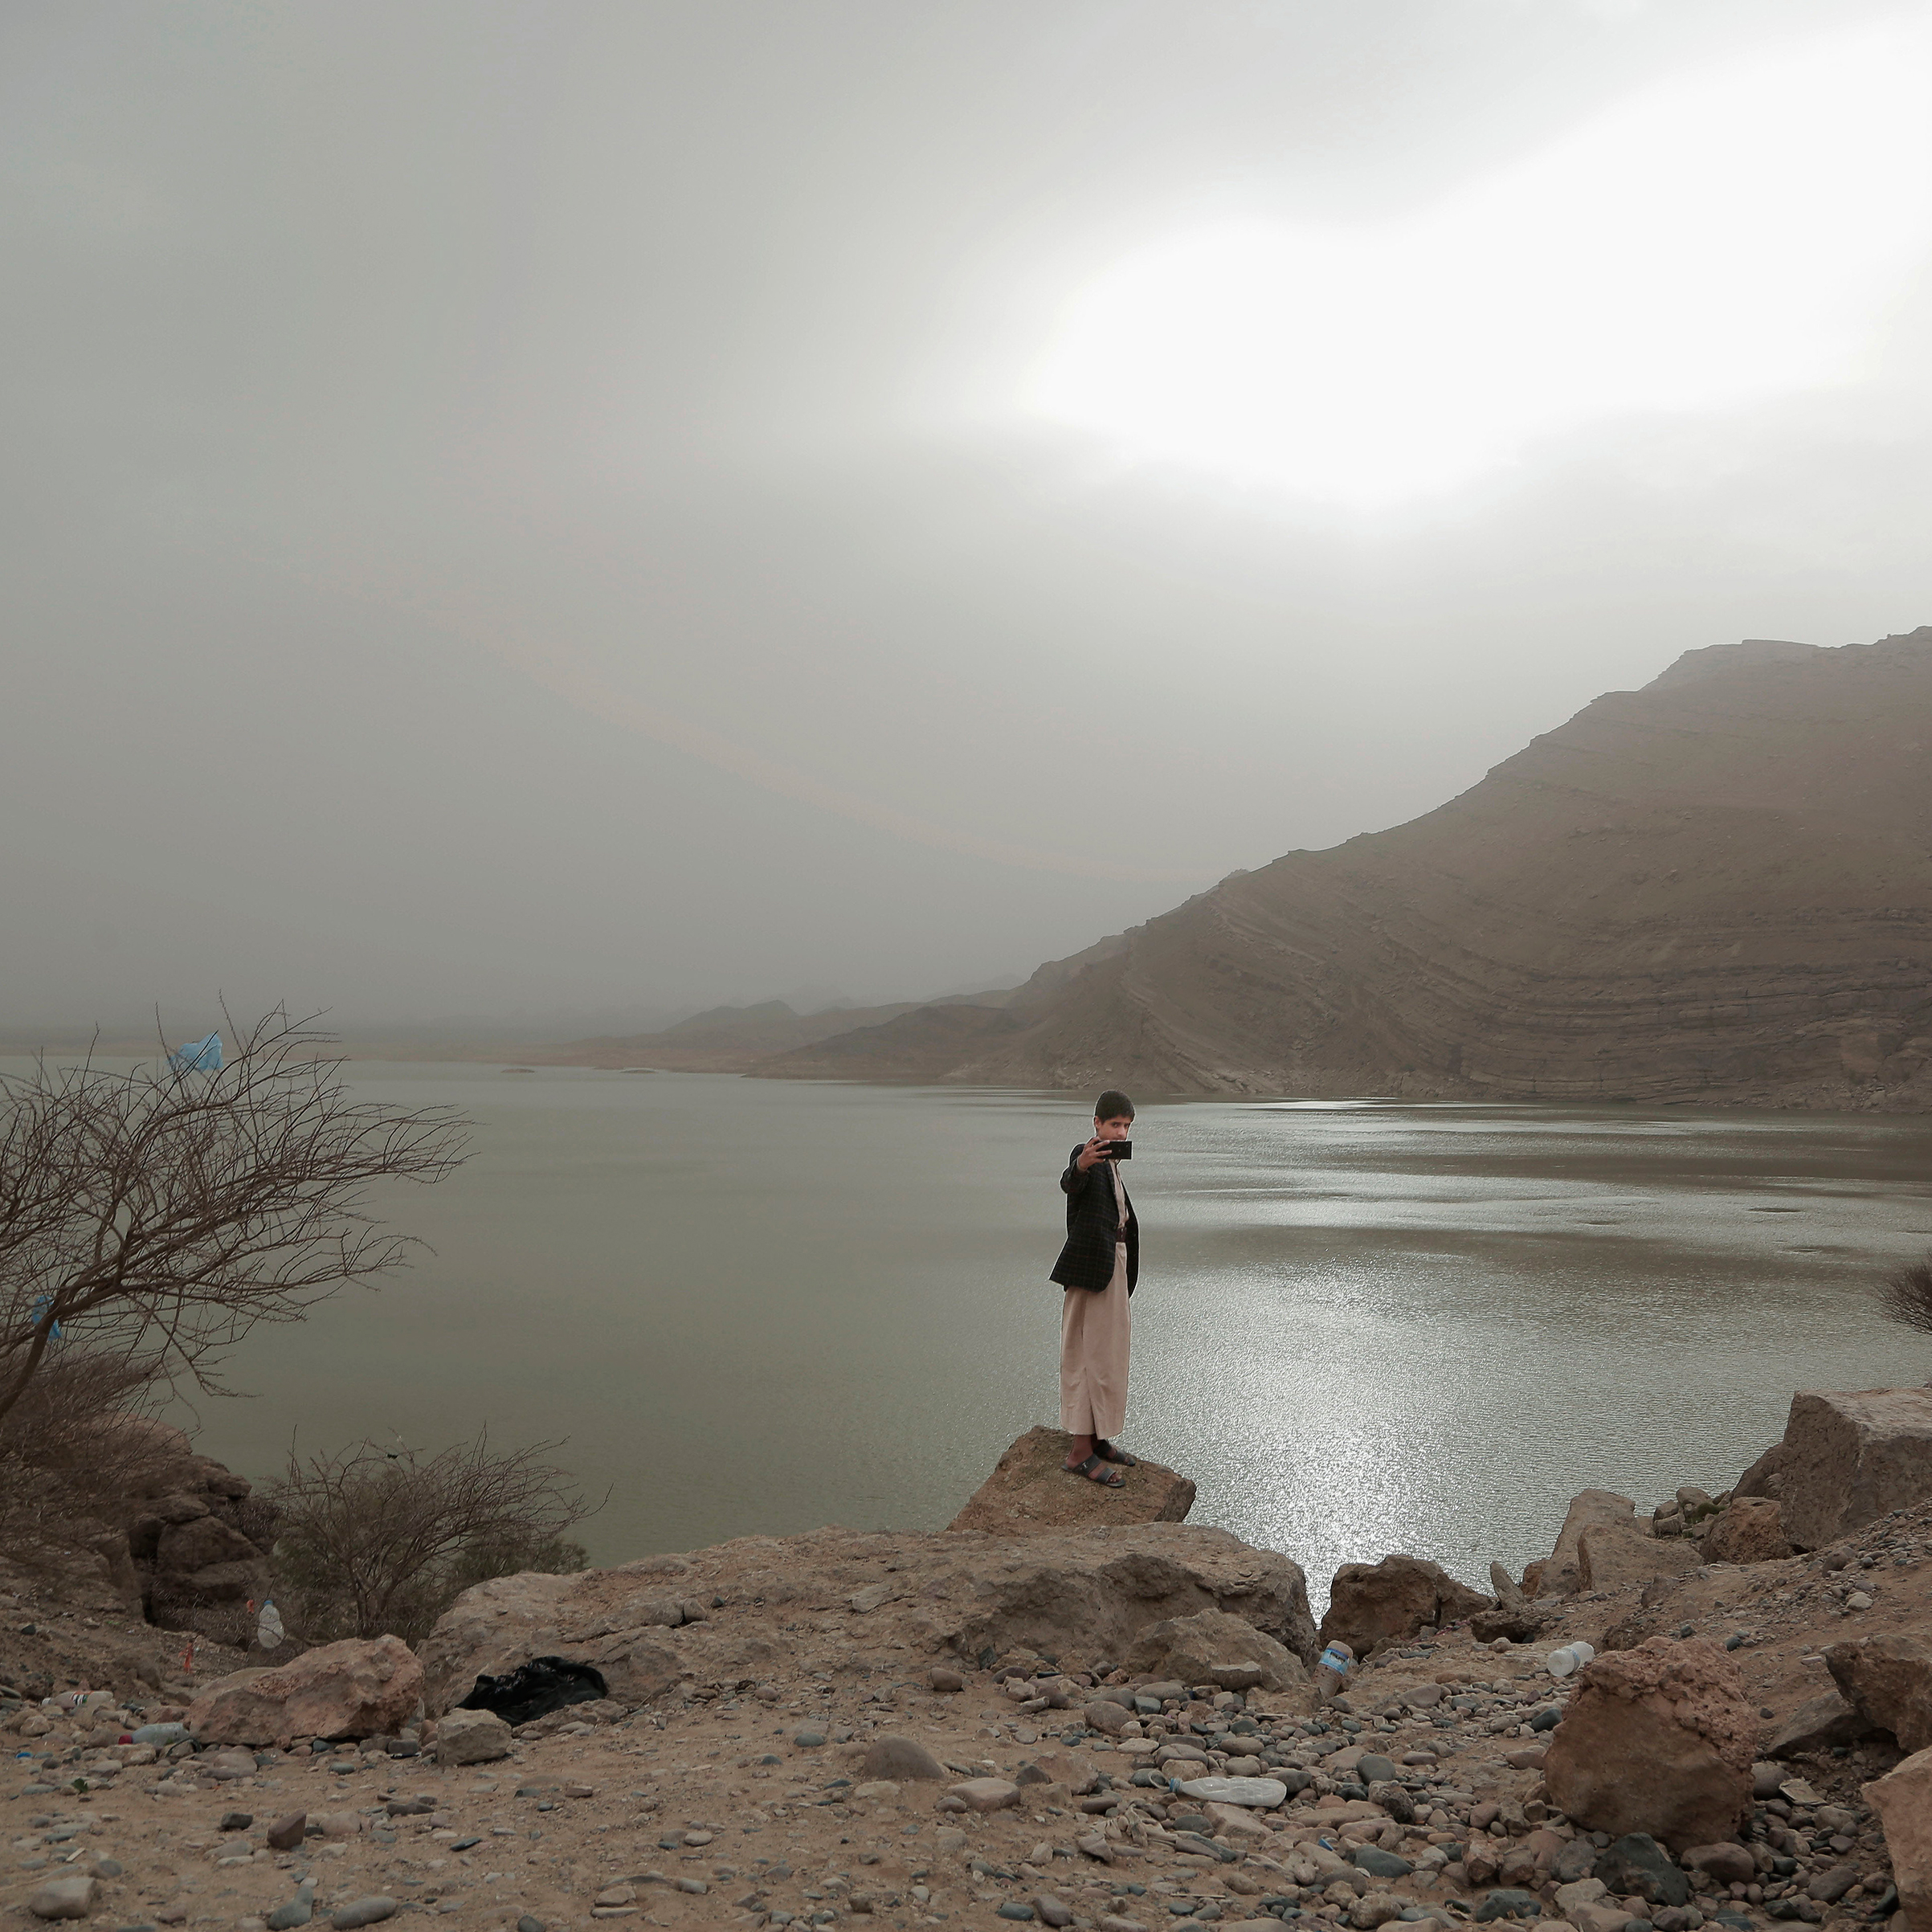 A boy takes a selfie at the Marib Dam on July 30.